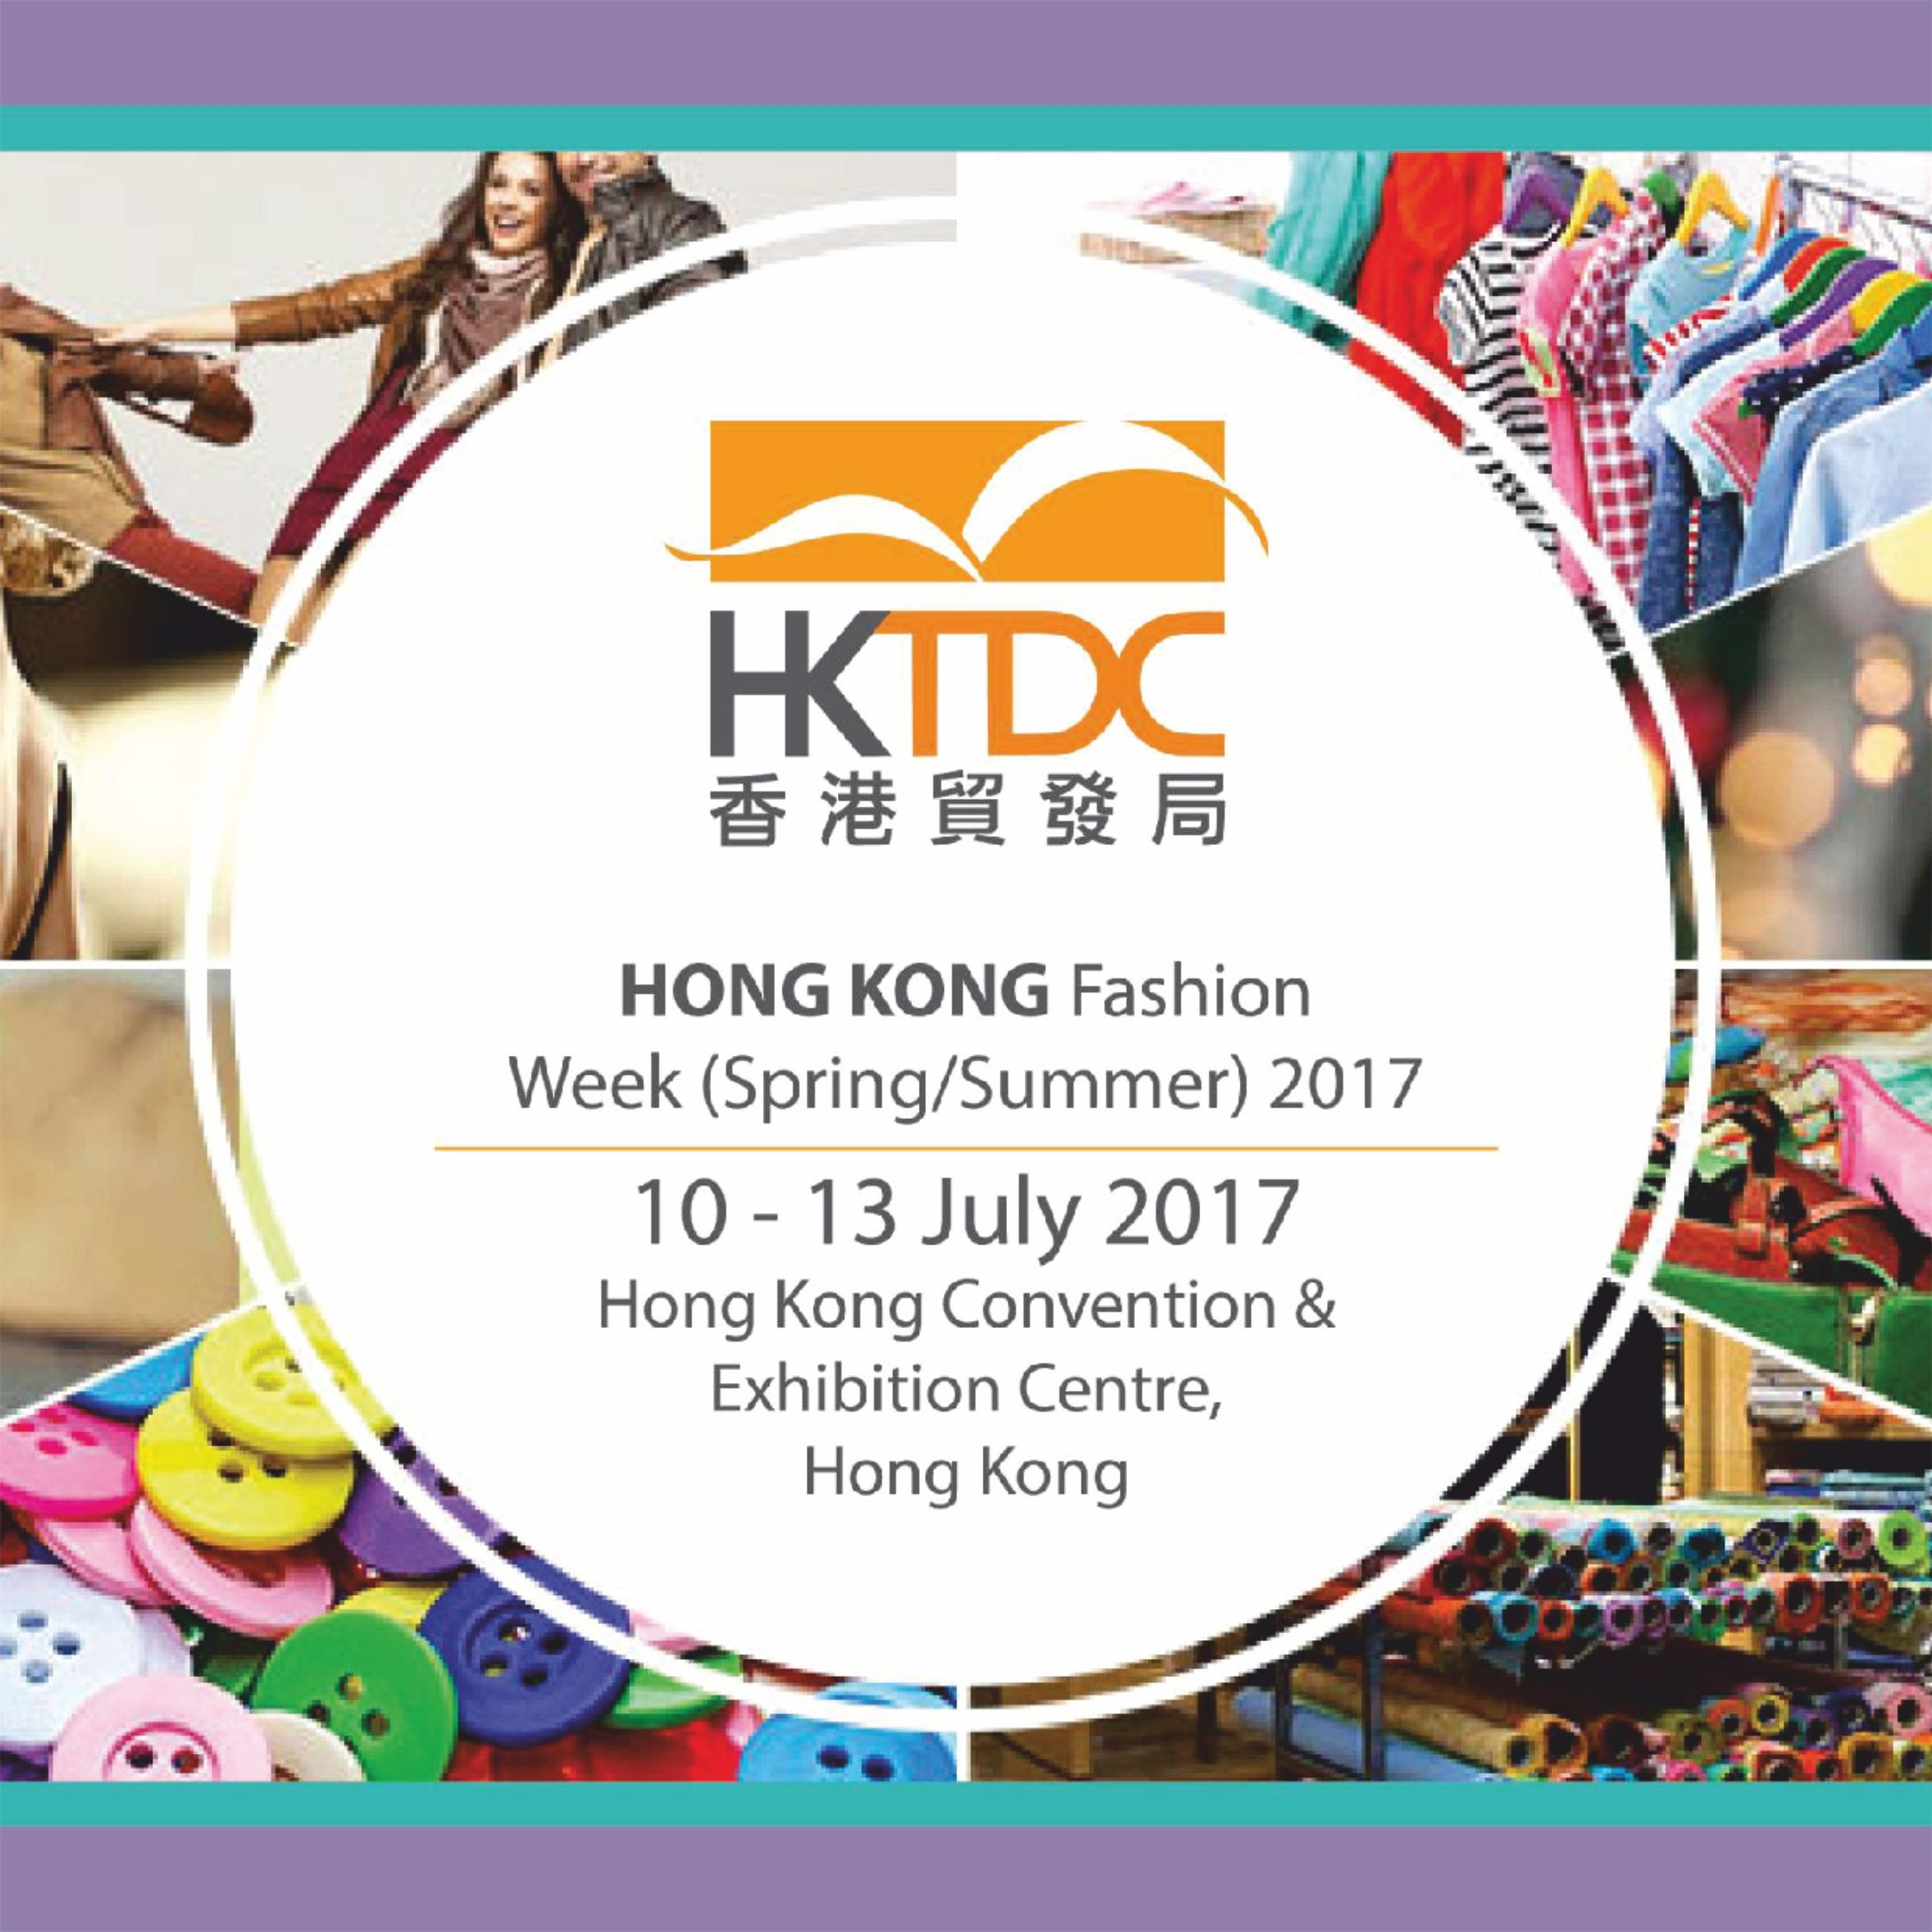 Wearable technology in focus at Hong Kong fashion week